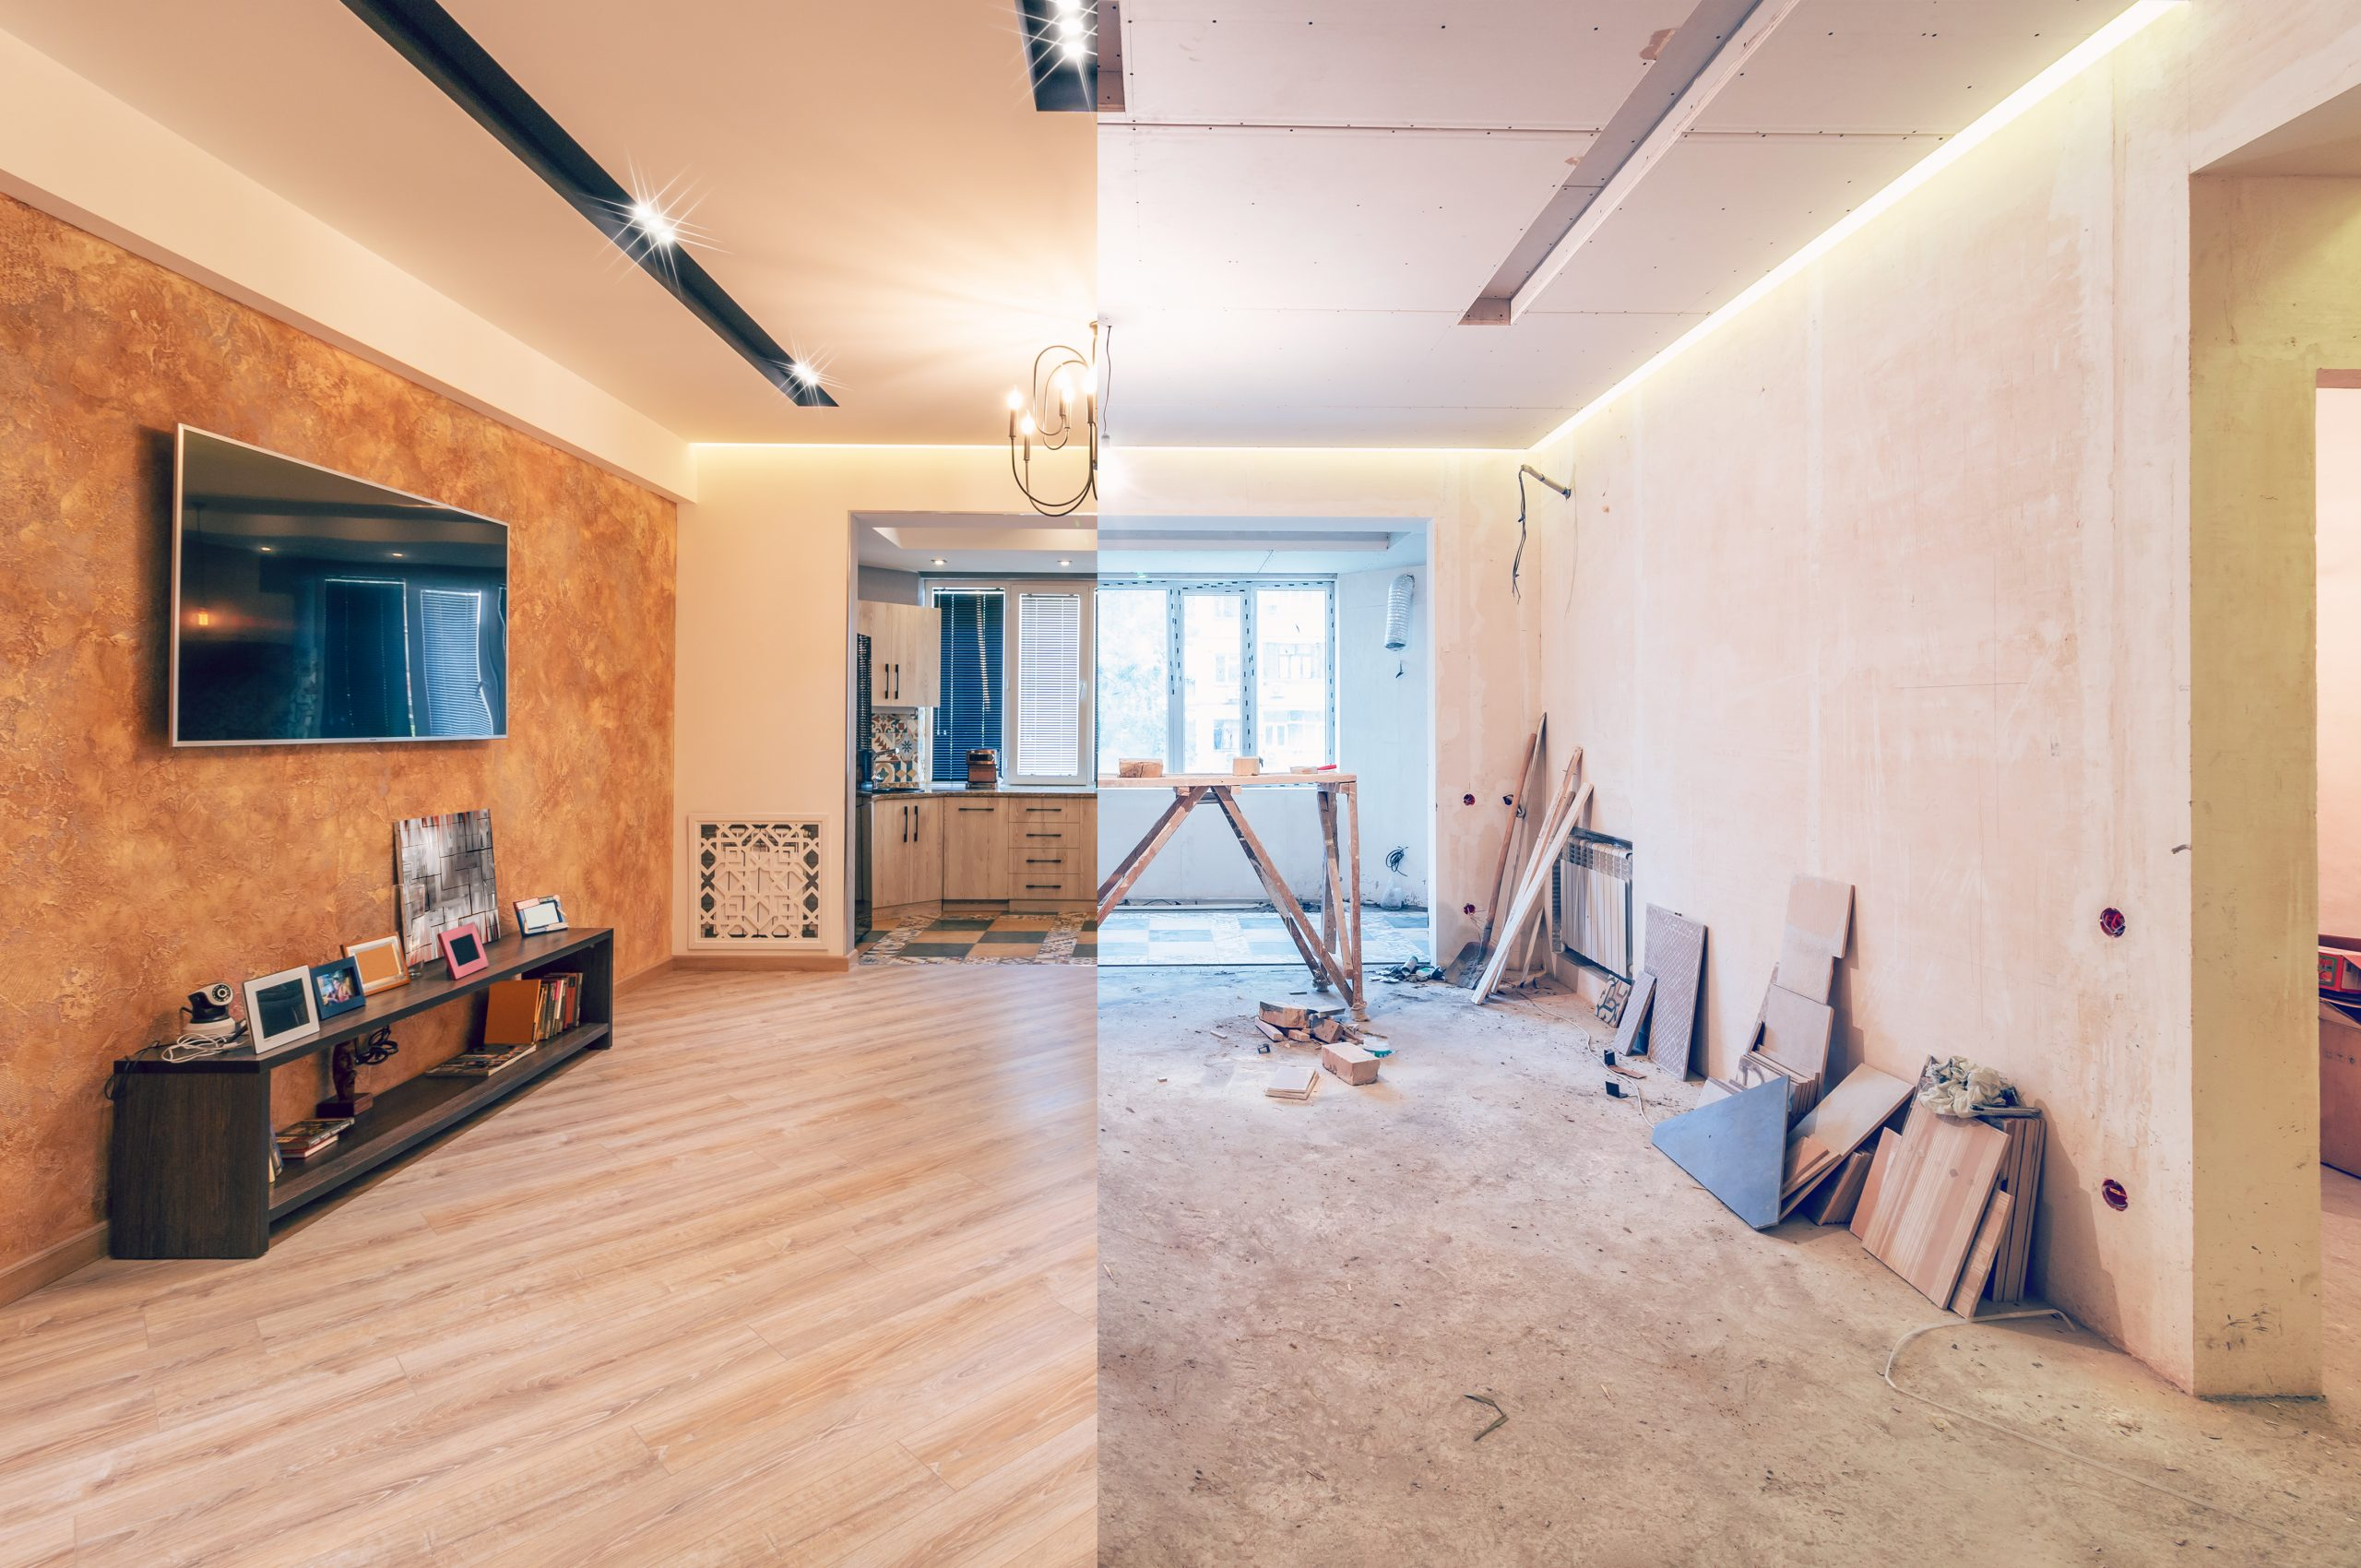 RENOVATIONS: choosing an appropriate contractor